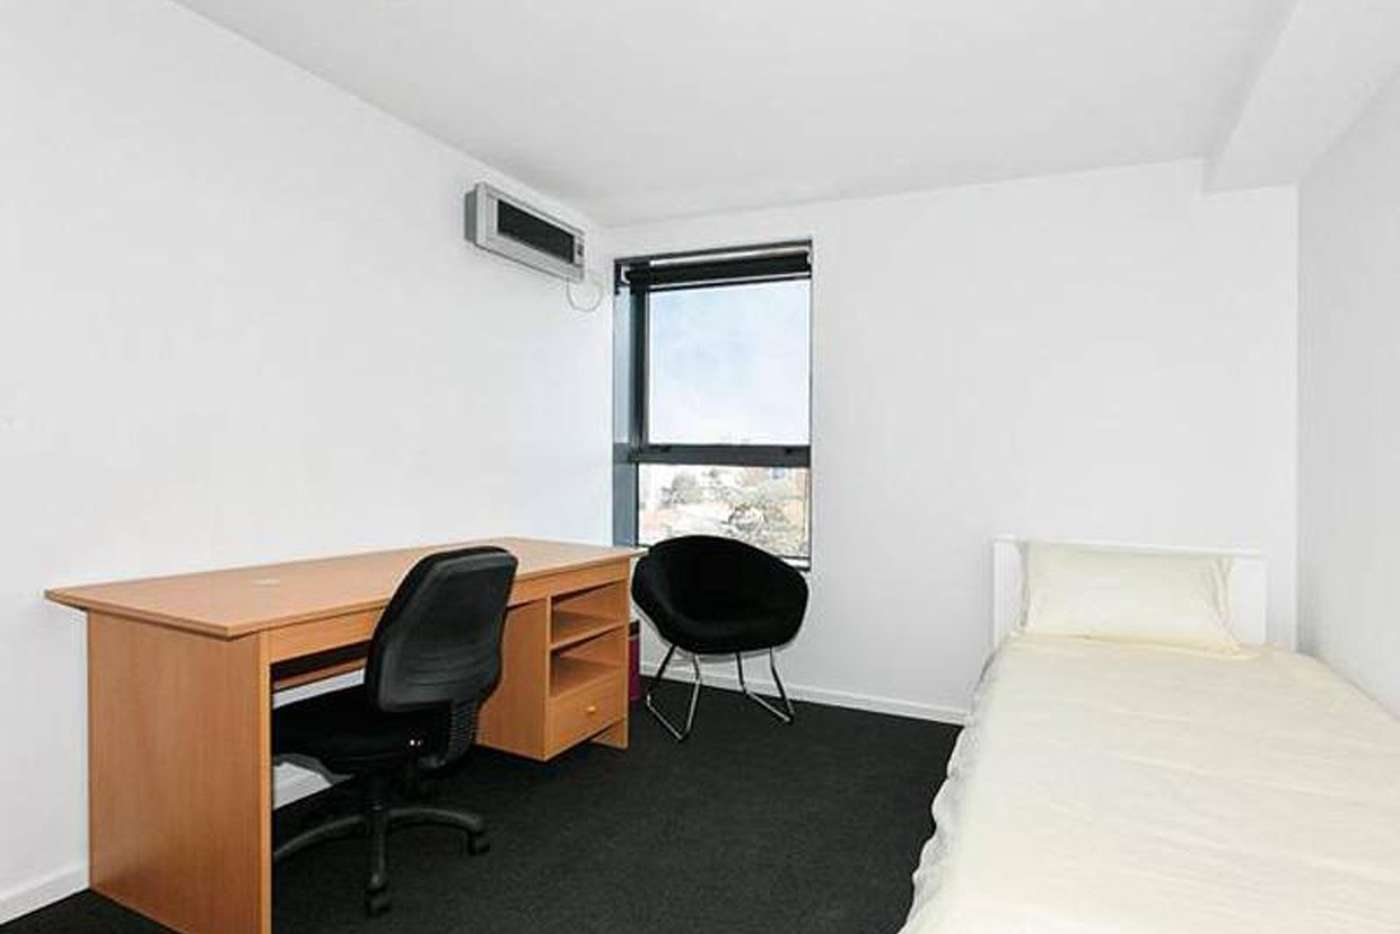 Main view of Homely apartment listing, 305/51 Gordon Street, Footscray VIC 3011